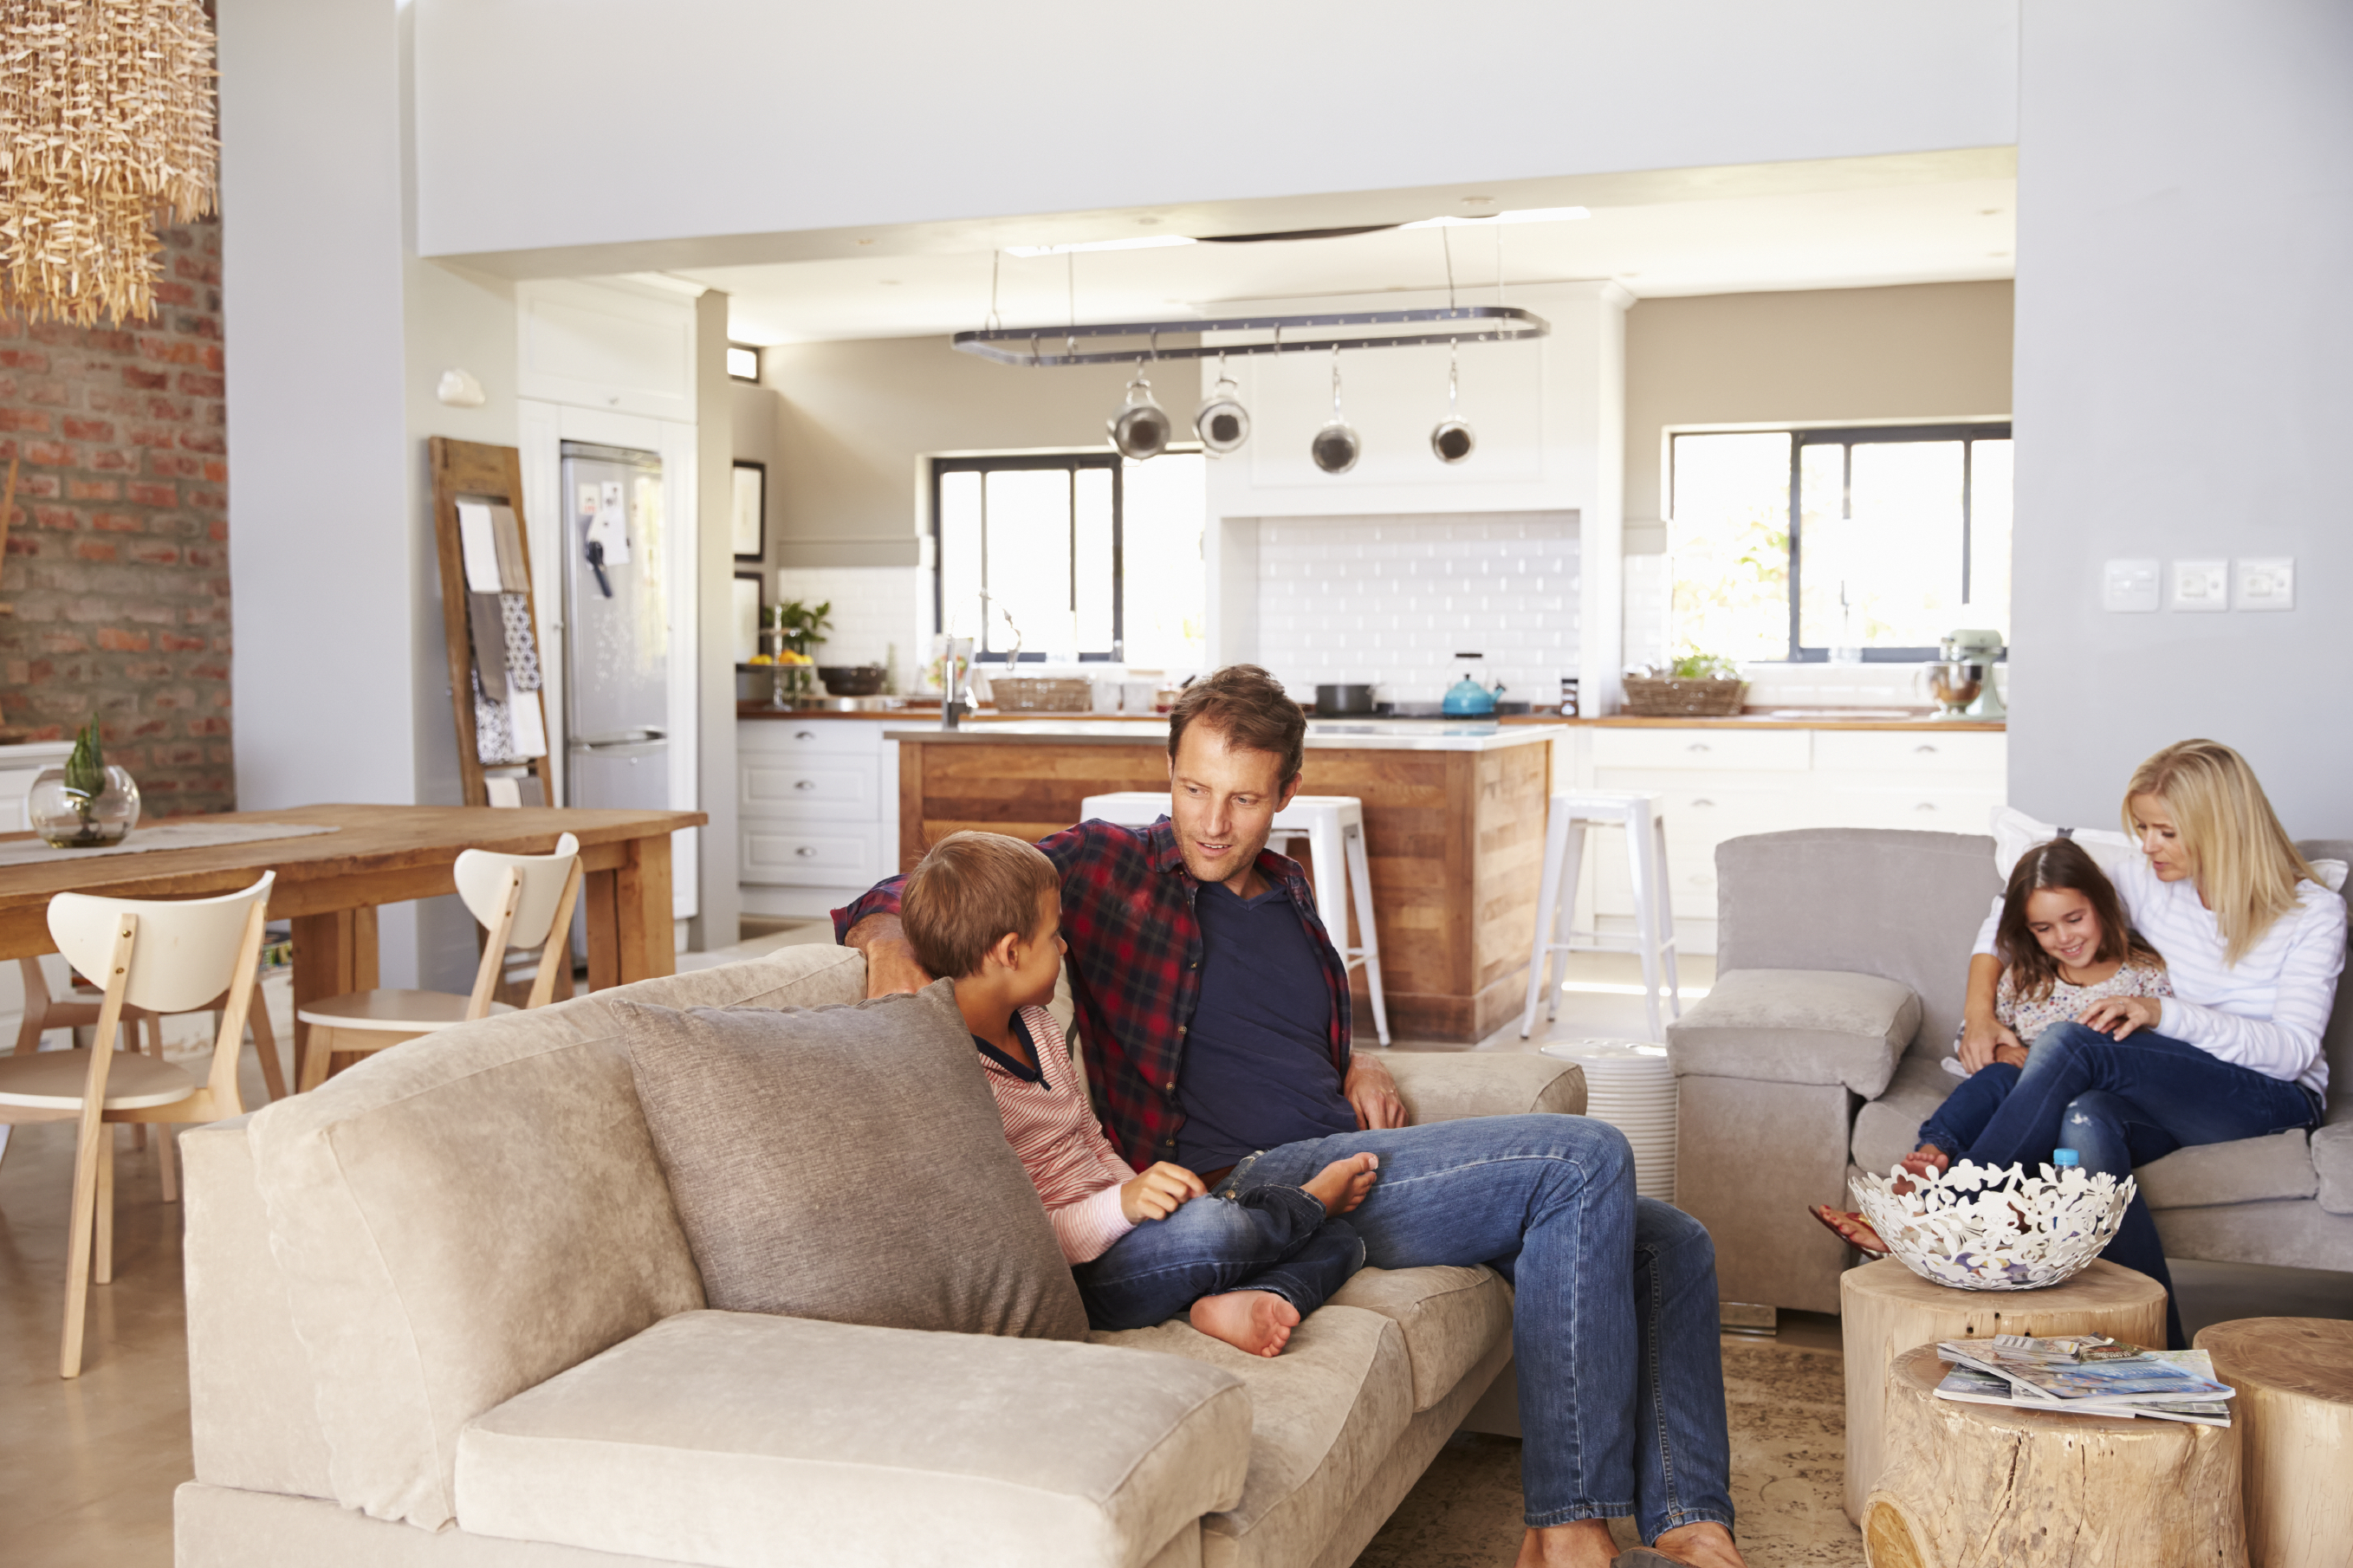 Stock photo of a family sitting in their living room